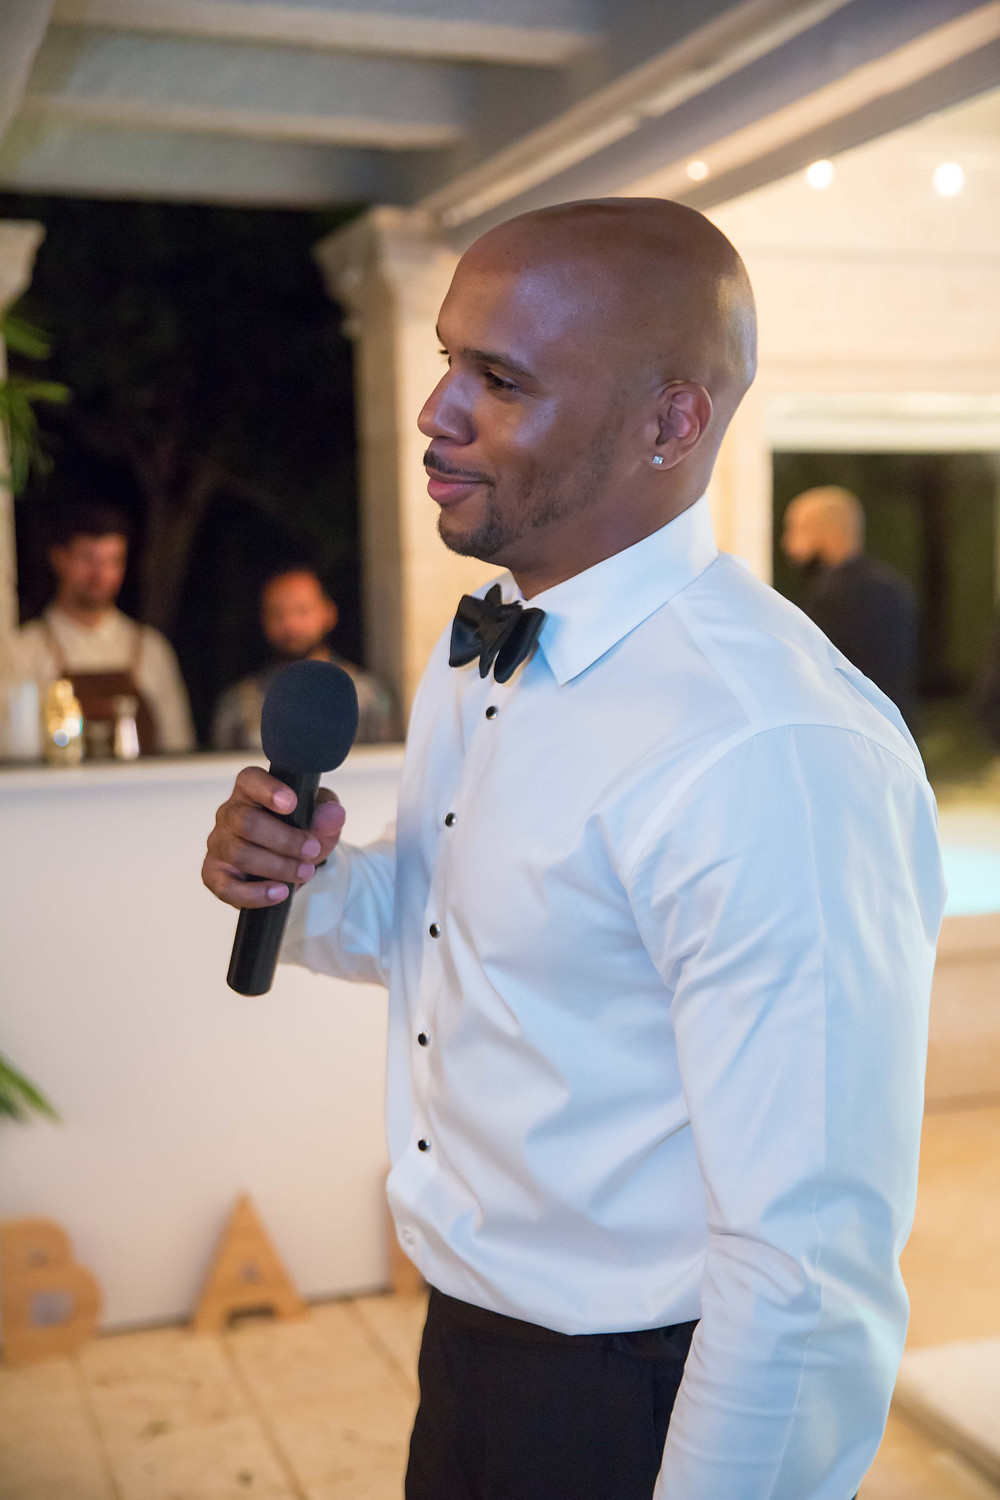 The best man gives his toast during the destination wedding reception in Punta Cana, Dominican Republic.